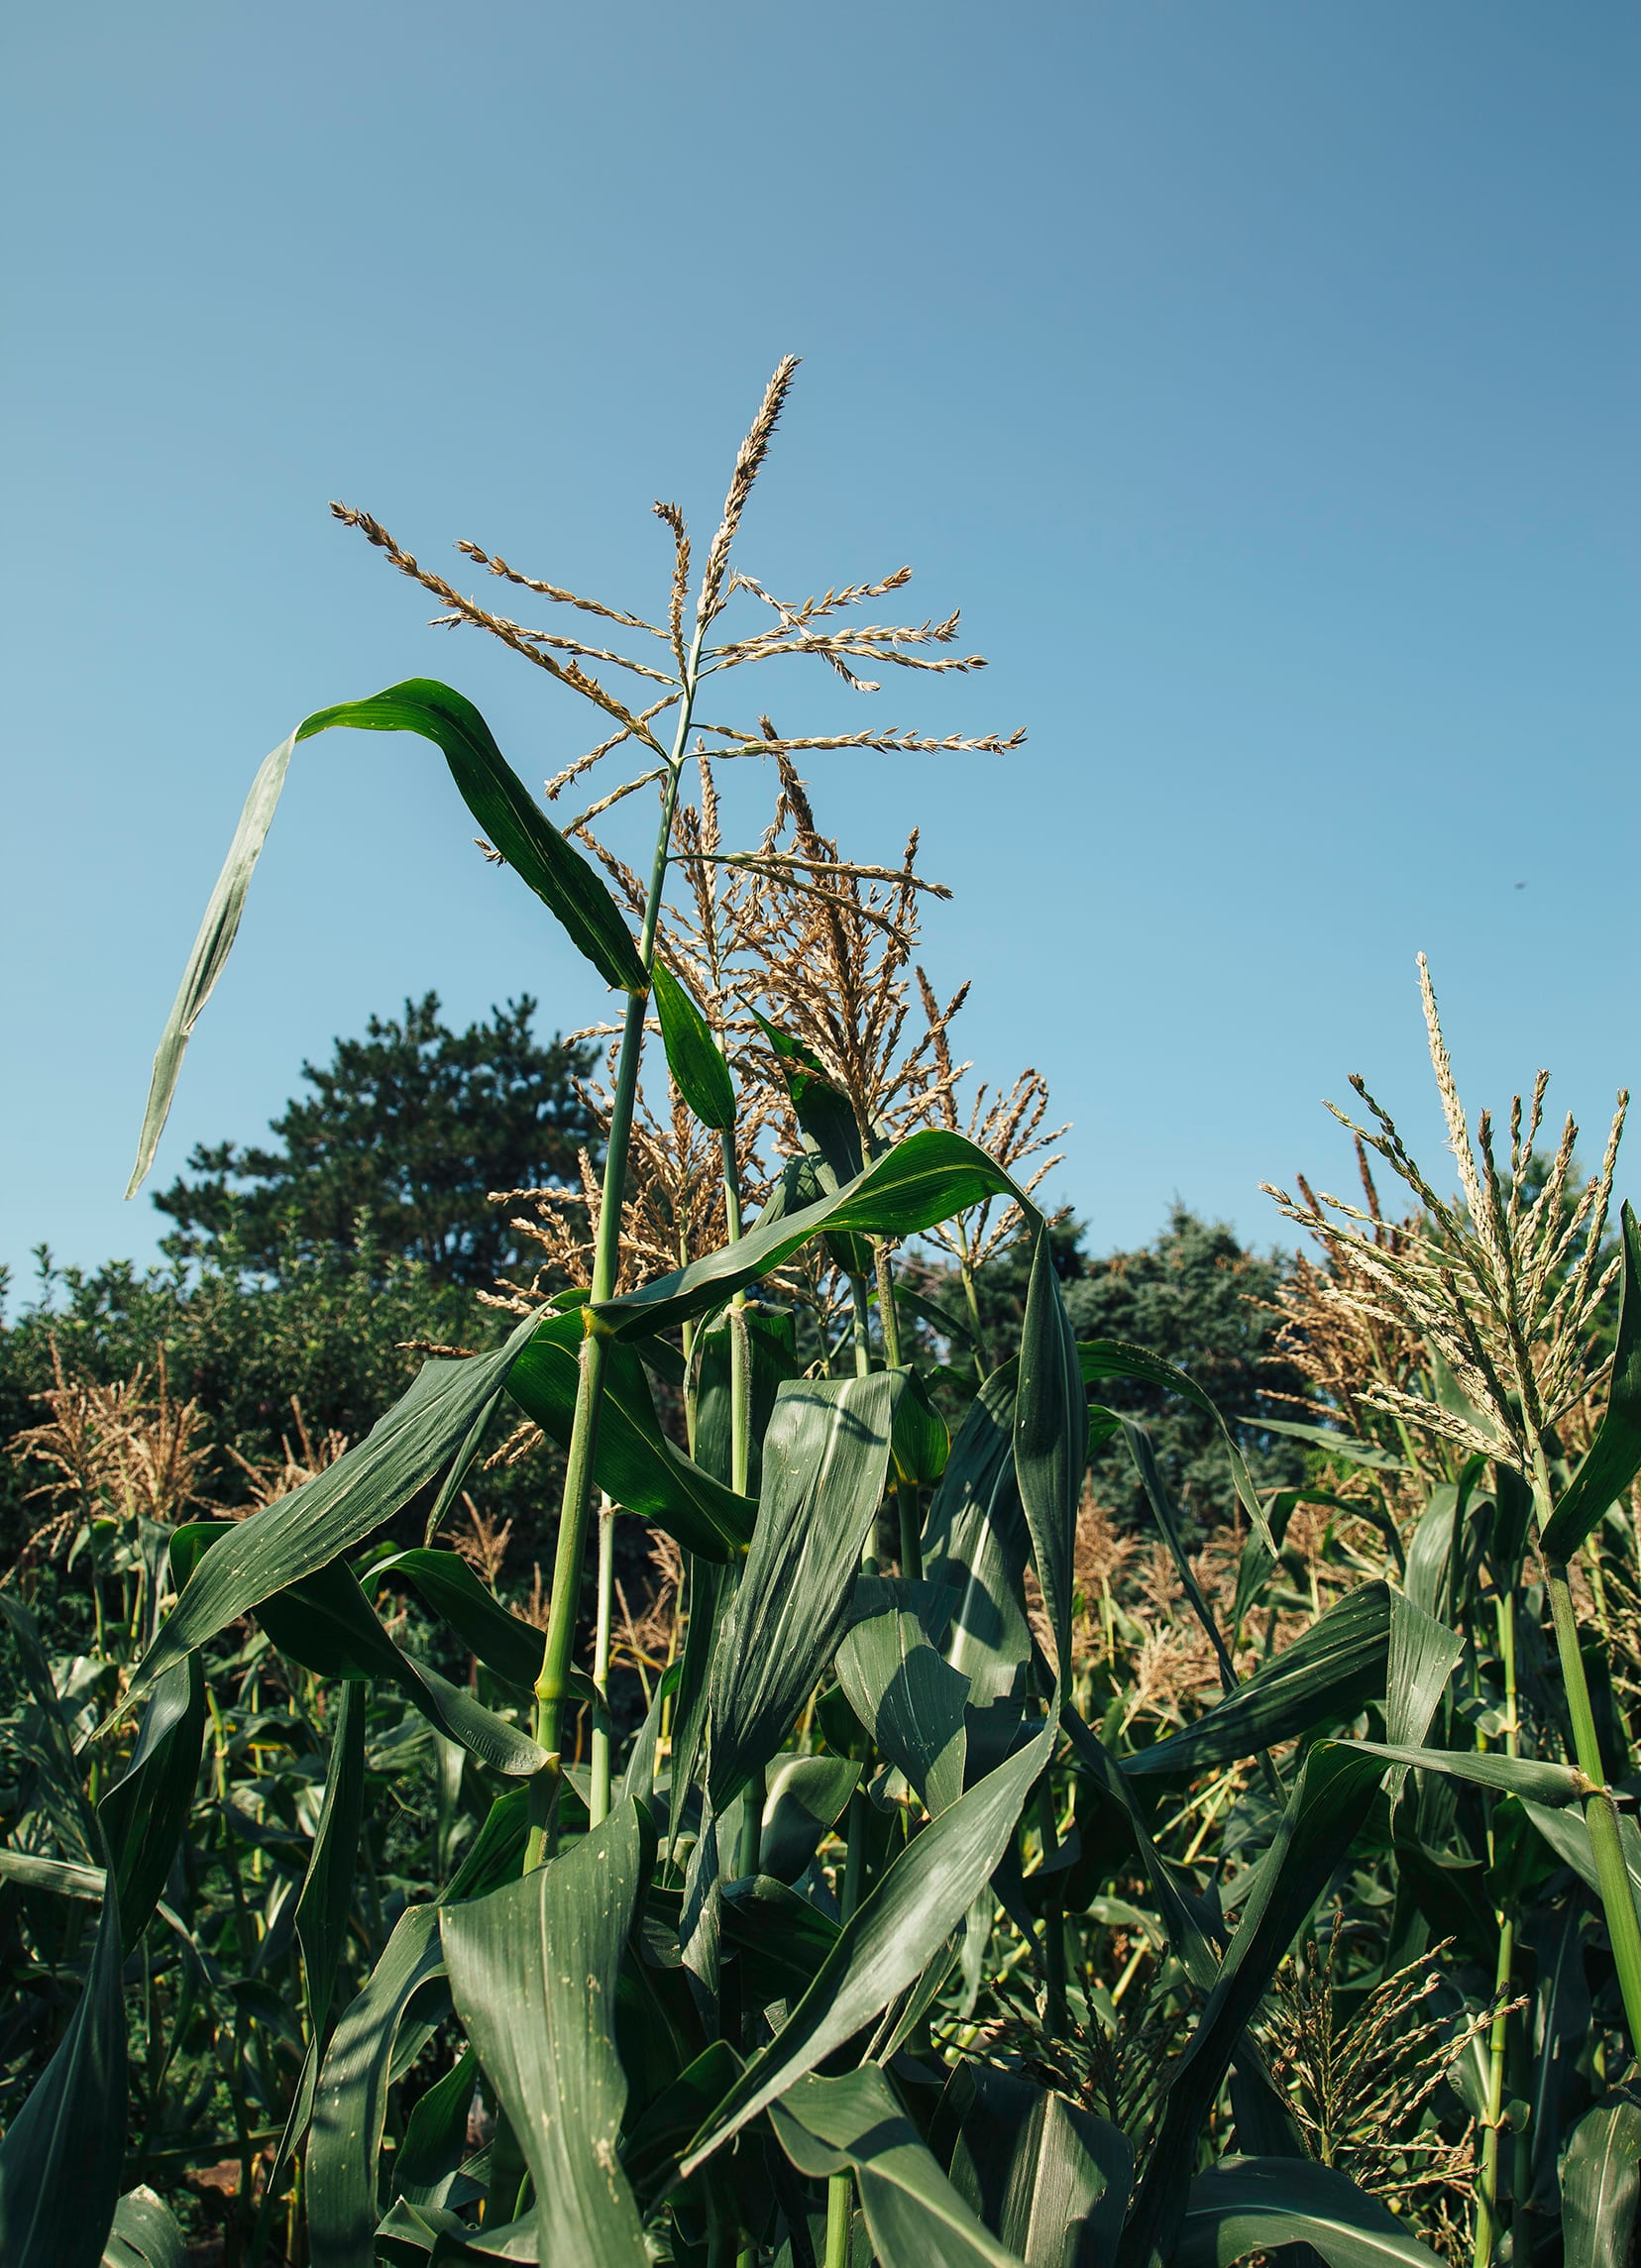 A shot of corn stalks outdoors in bright sunlight.